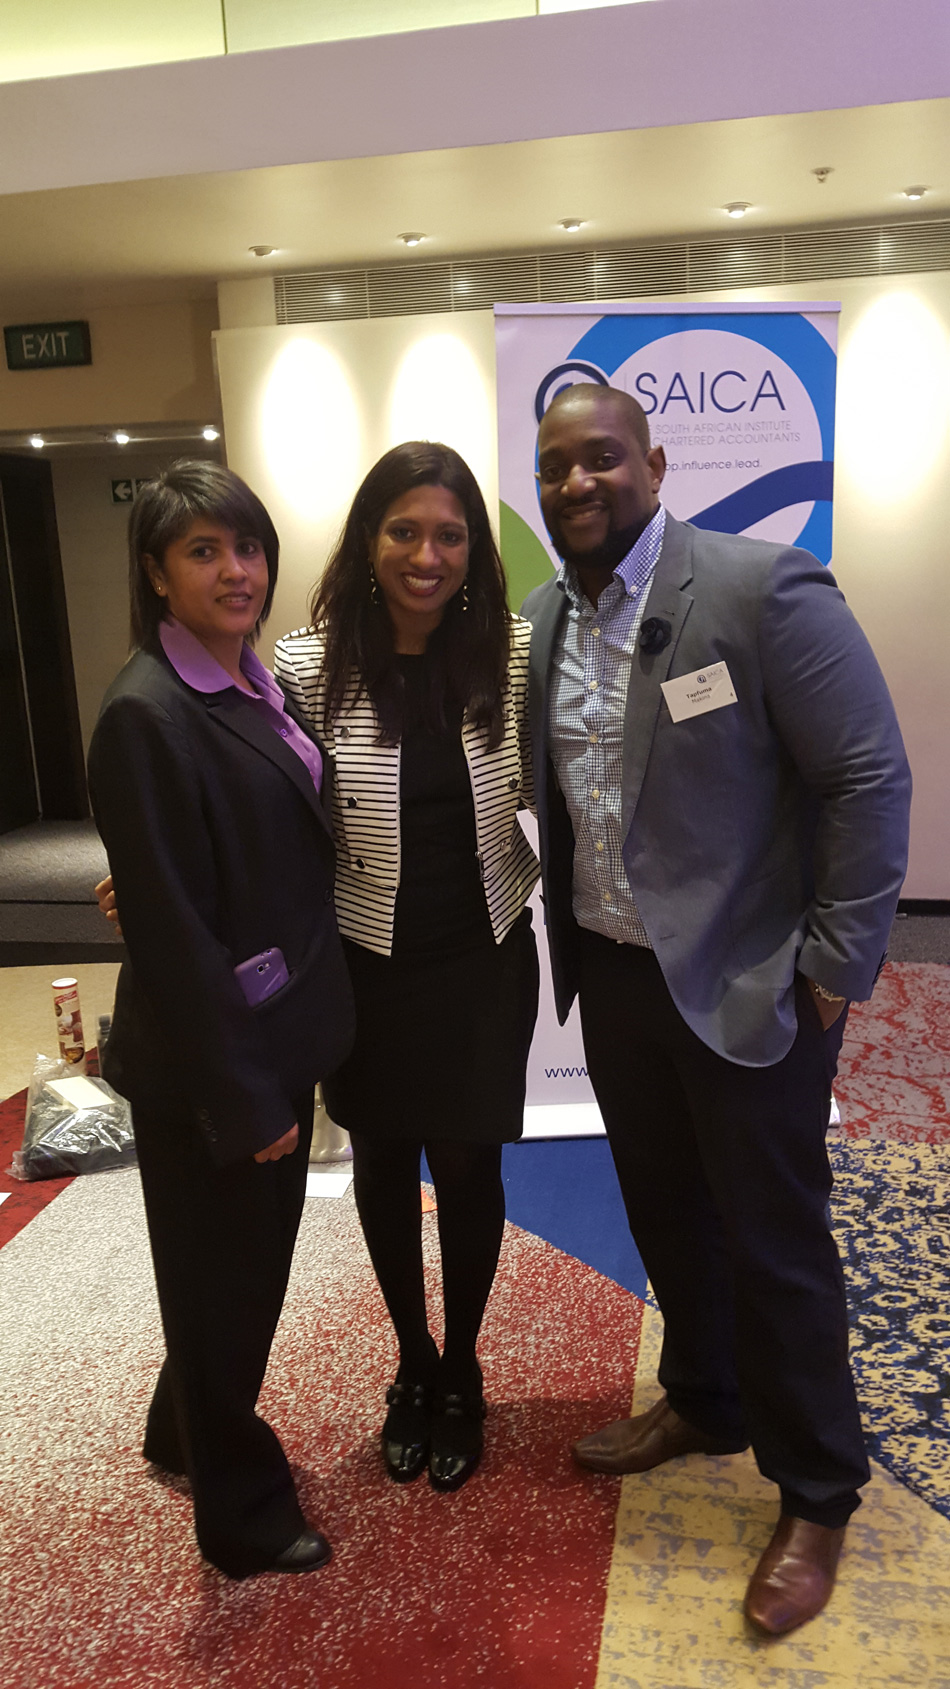 Event Speaker - SAICA Women in Leadership, Cape Town - October 2015